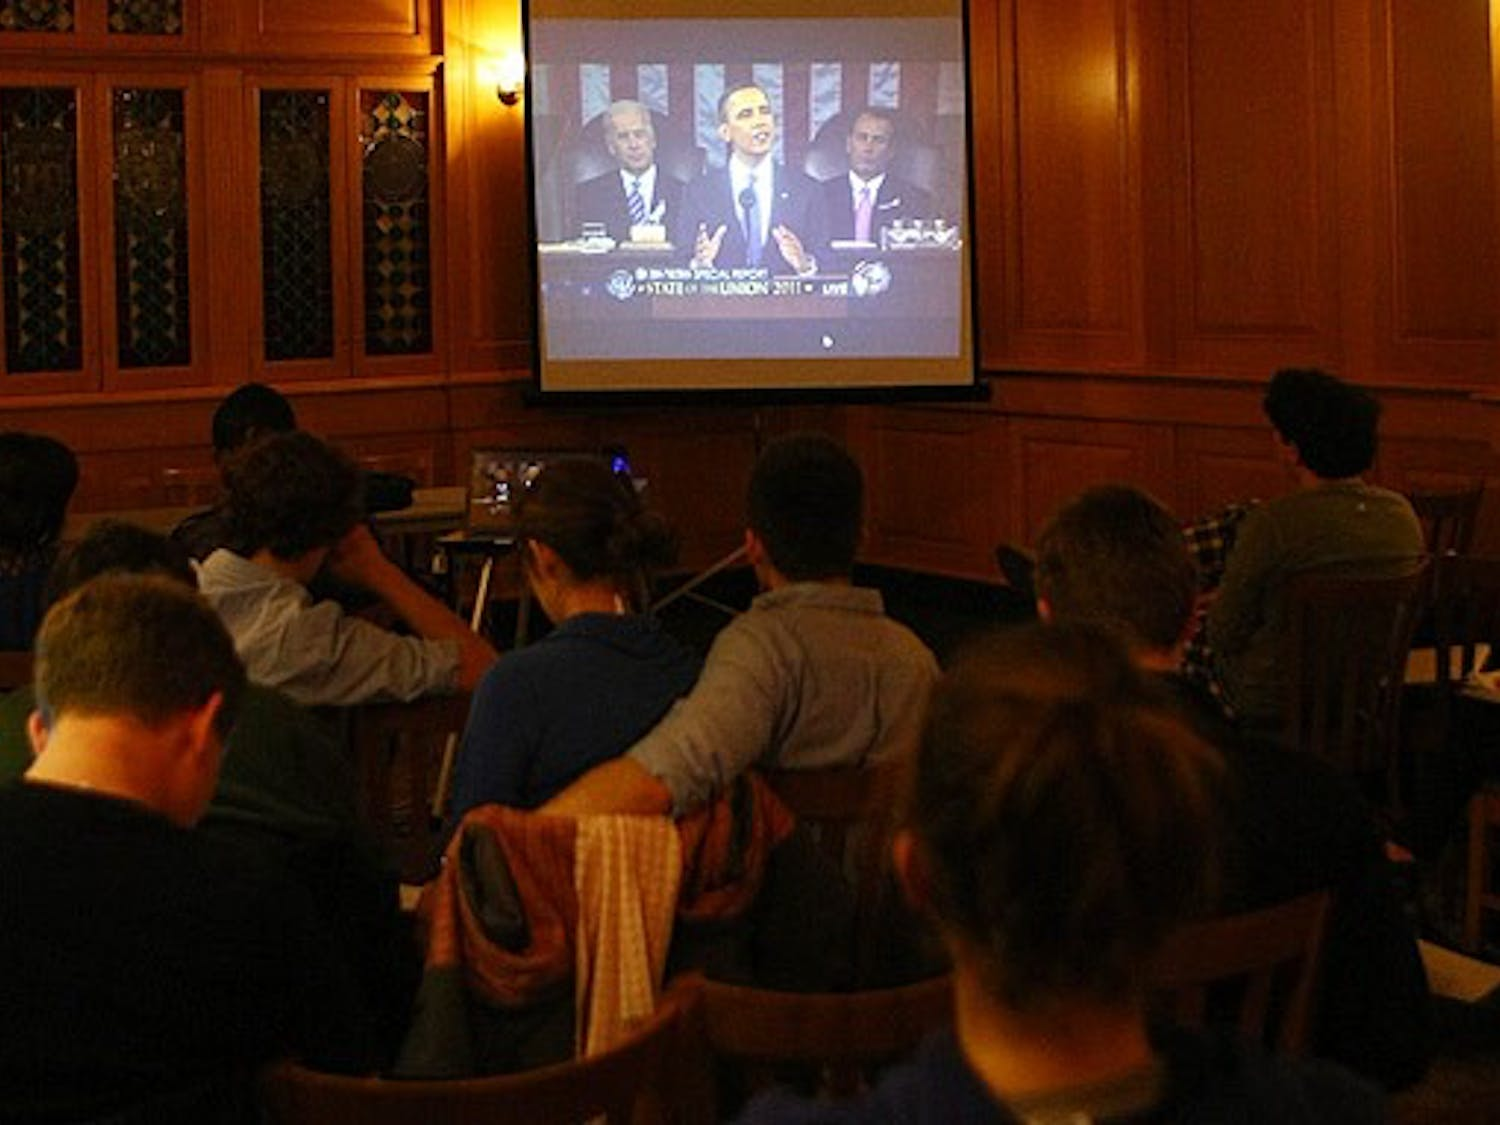 Students watch from the Old Trinity Room as President Barack Obama delivers his State of the Union address, which focused on innovation and the importance of American economic advancement.